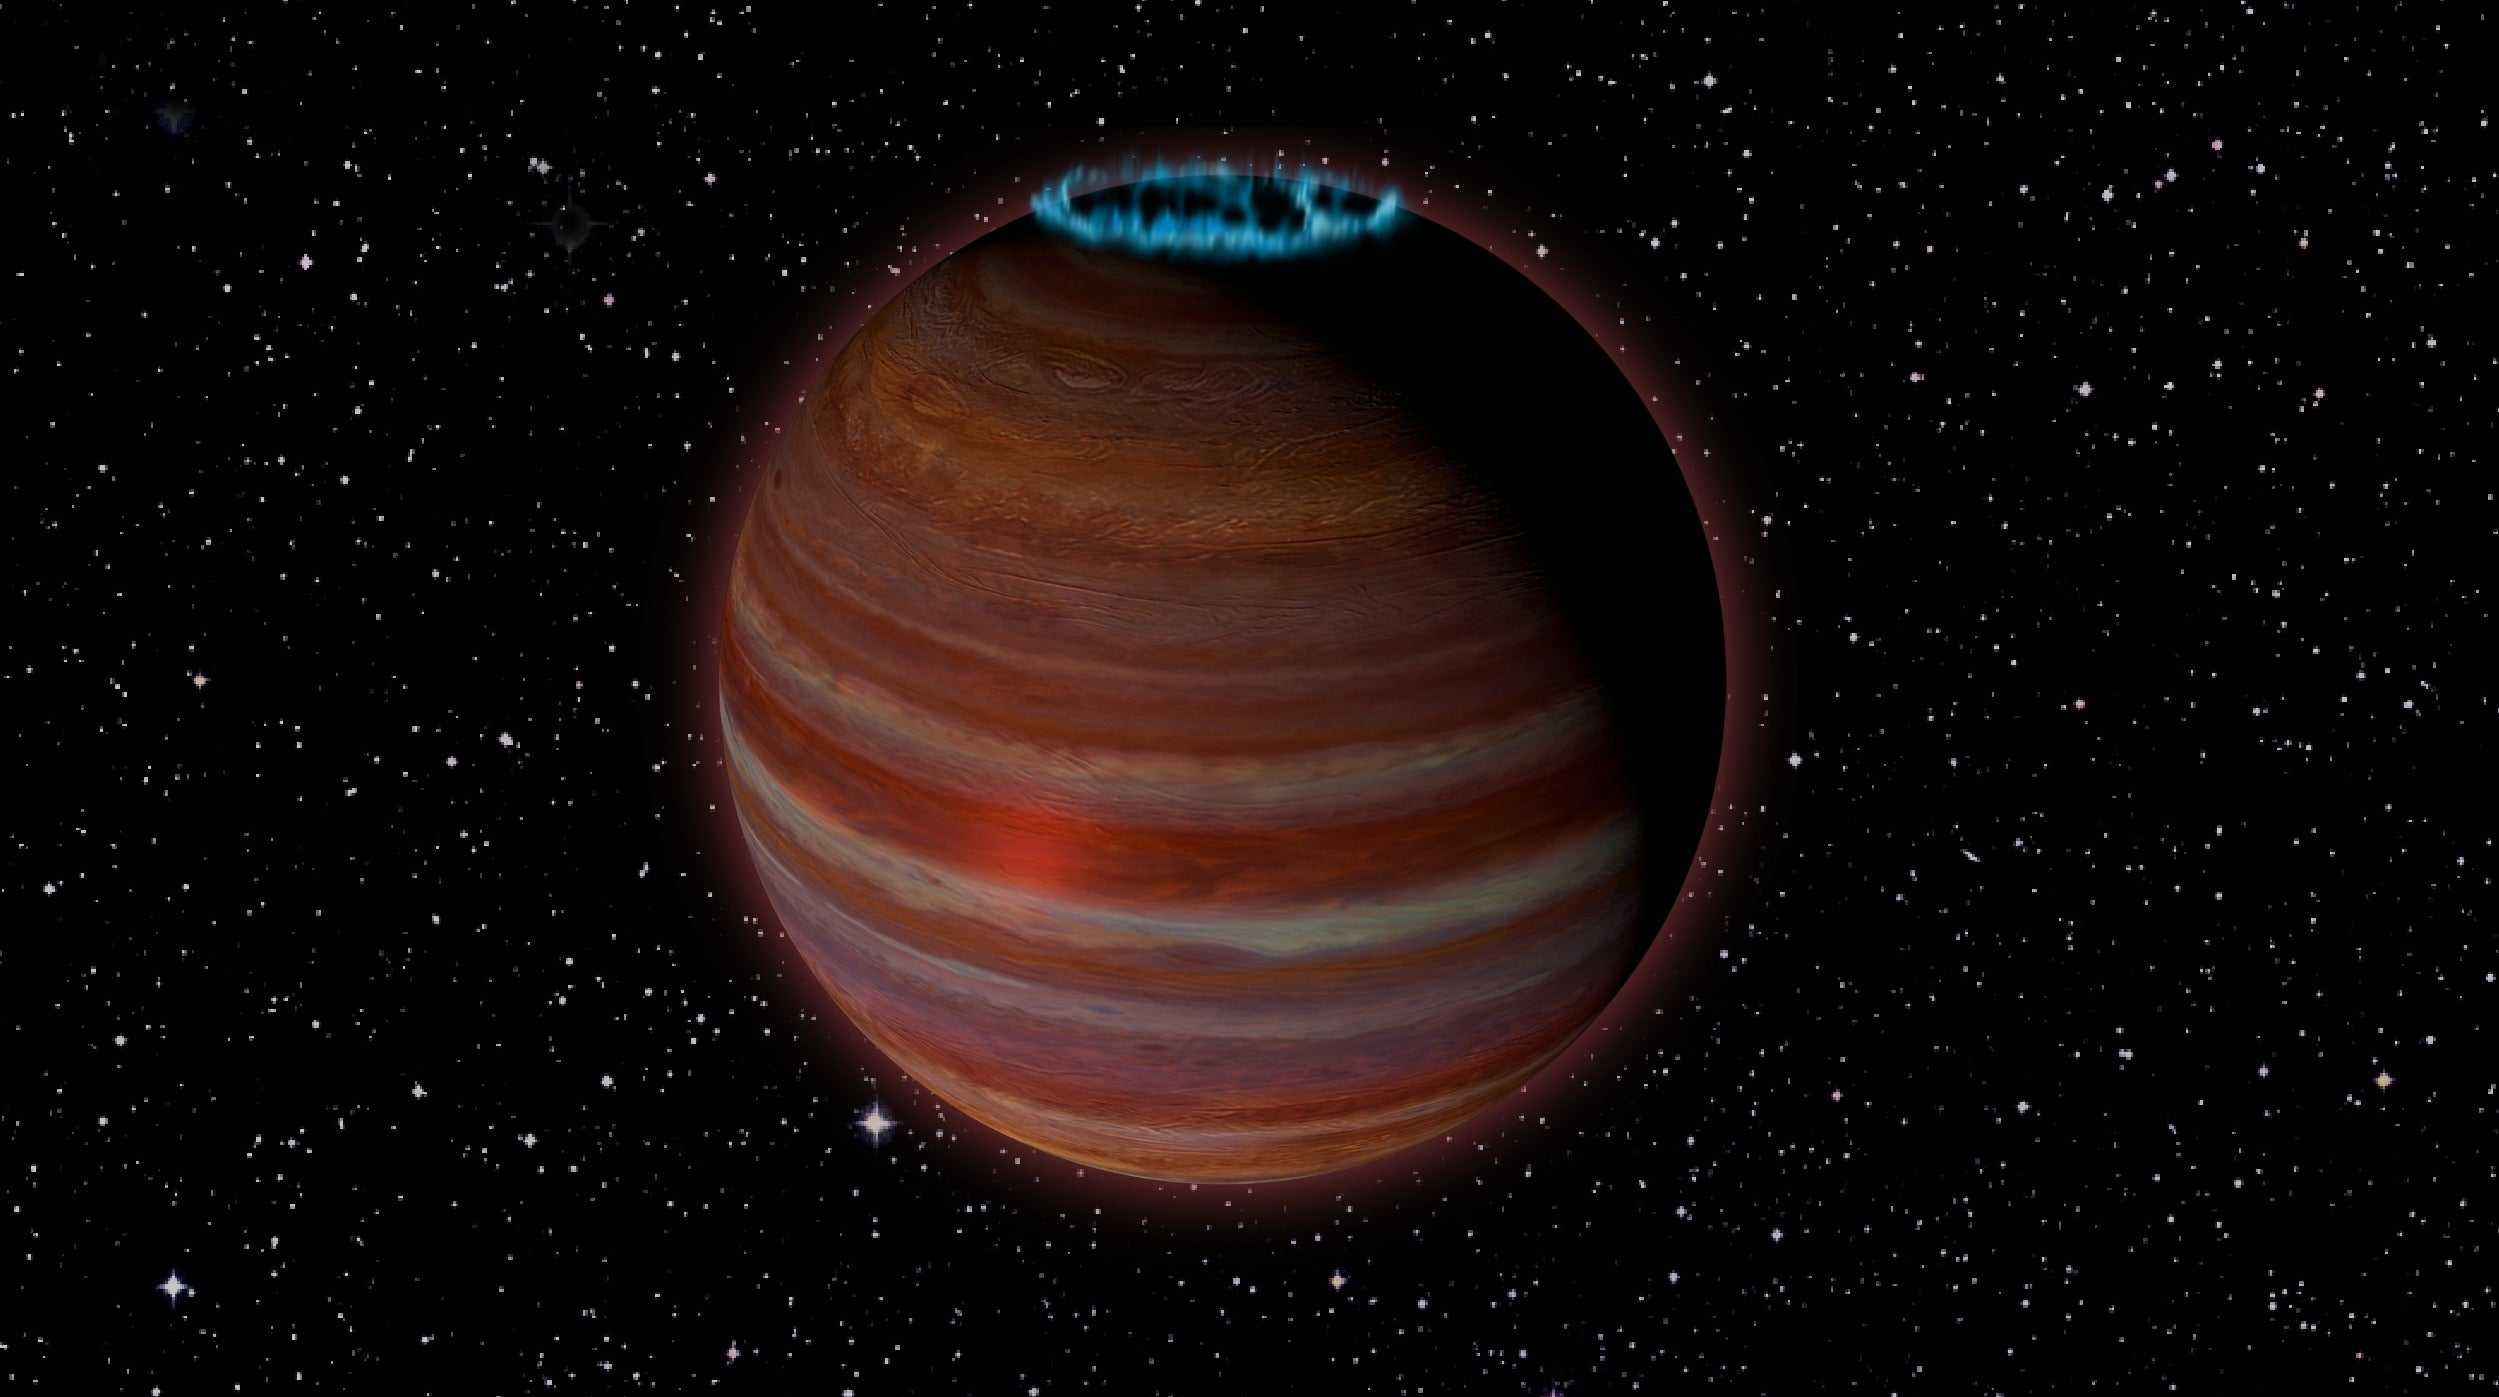 Planet Or Star? Either Way, This Rogue Object Is Really Weird